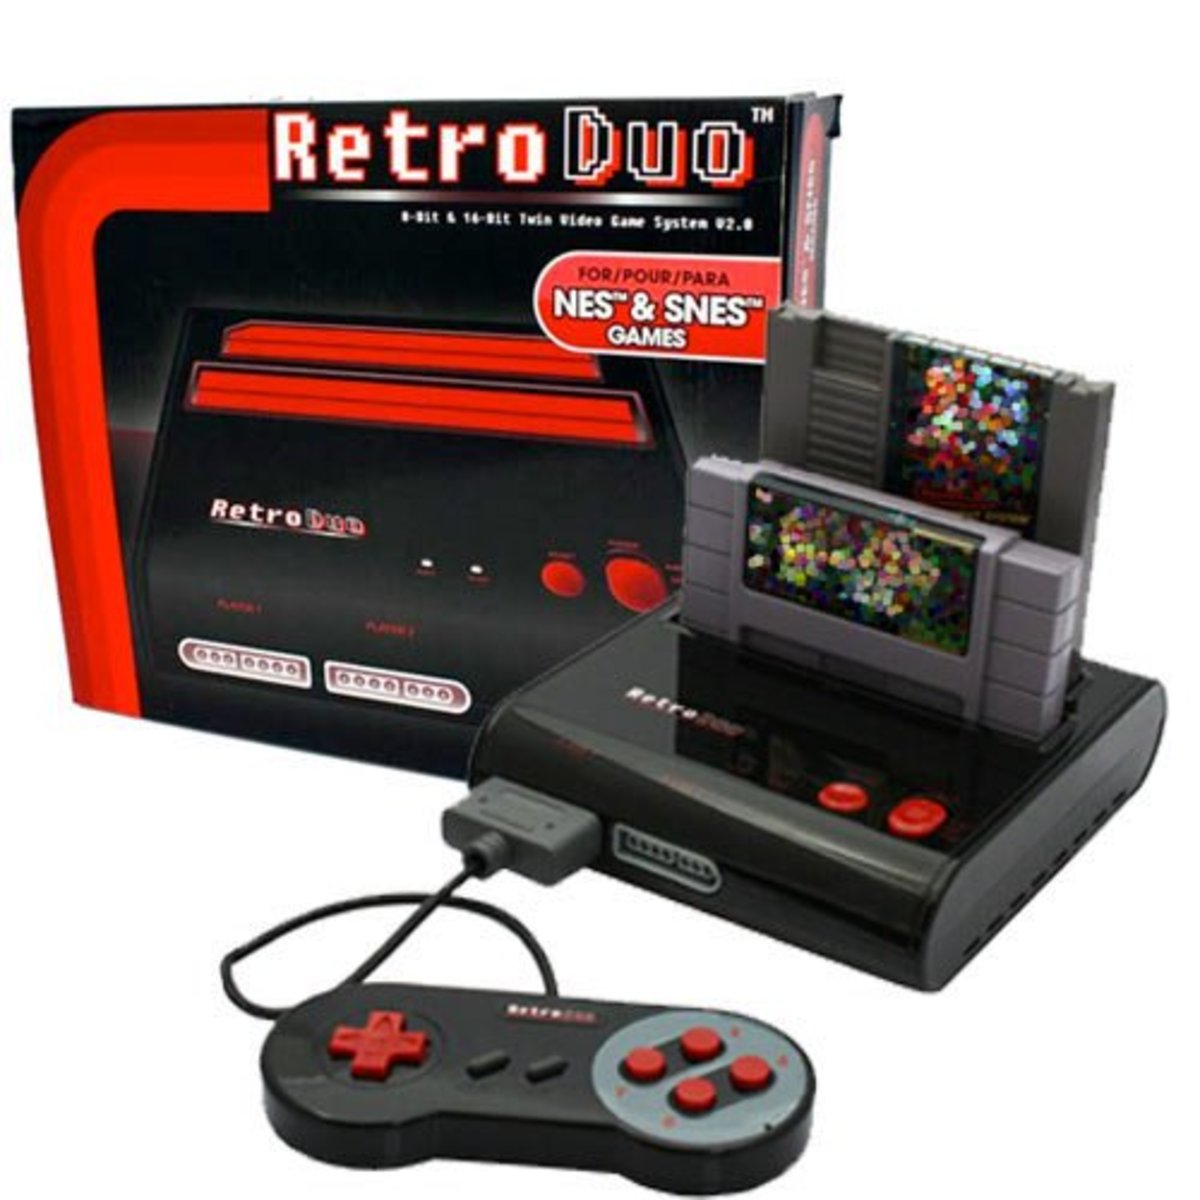 A promotional photo of the Retro Duo in red and black.